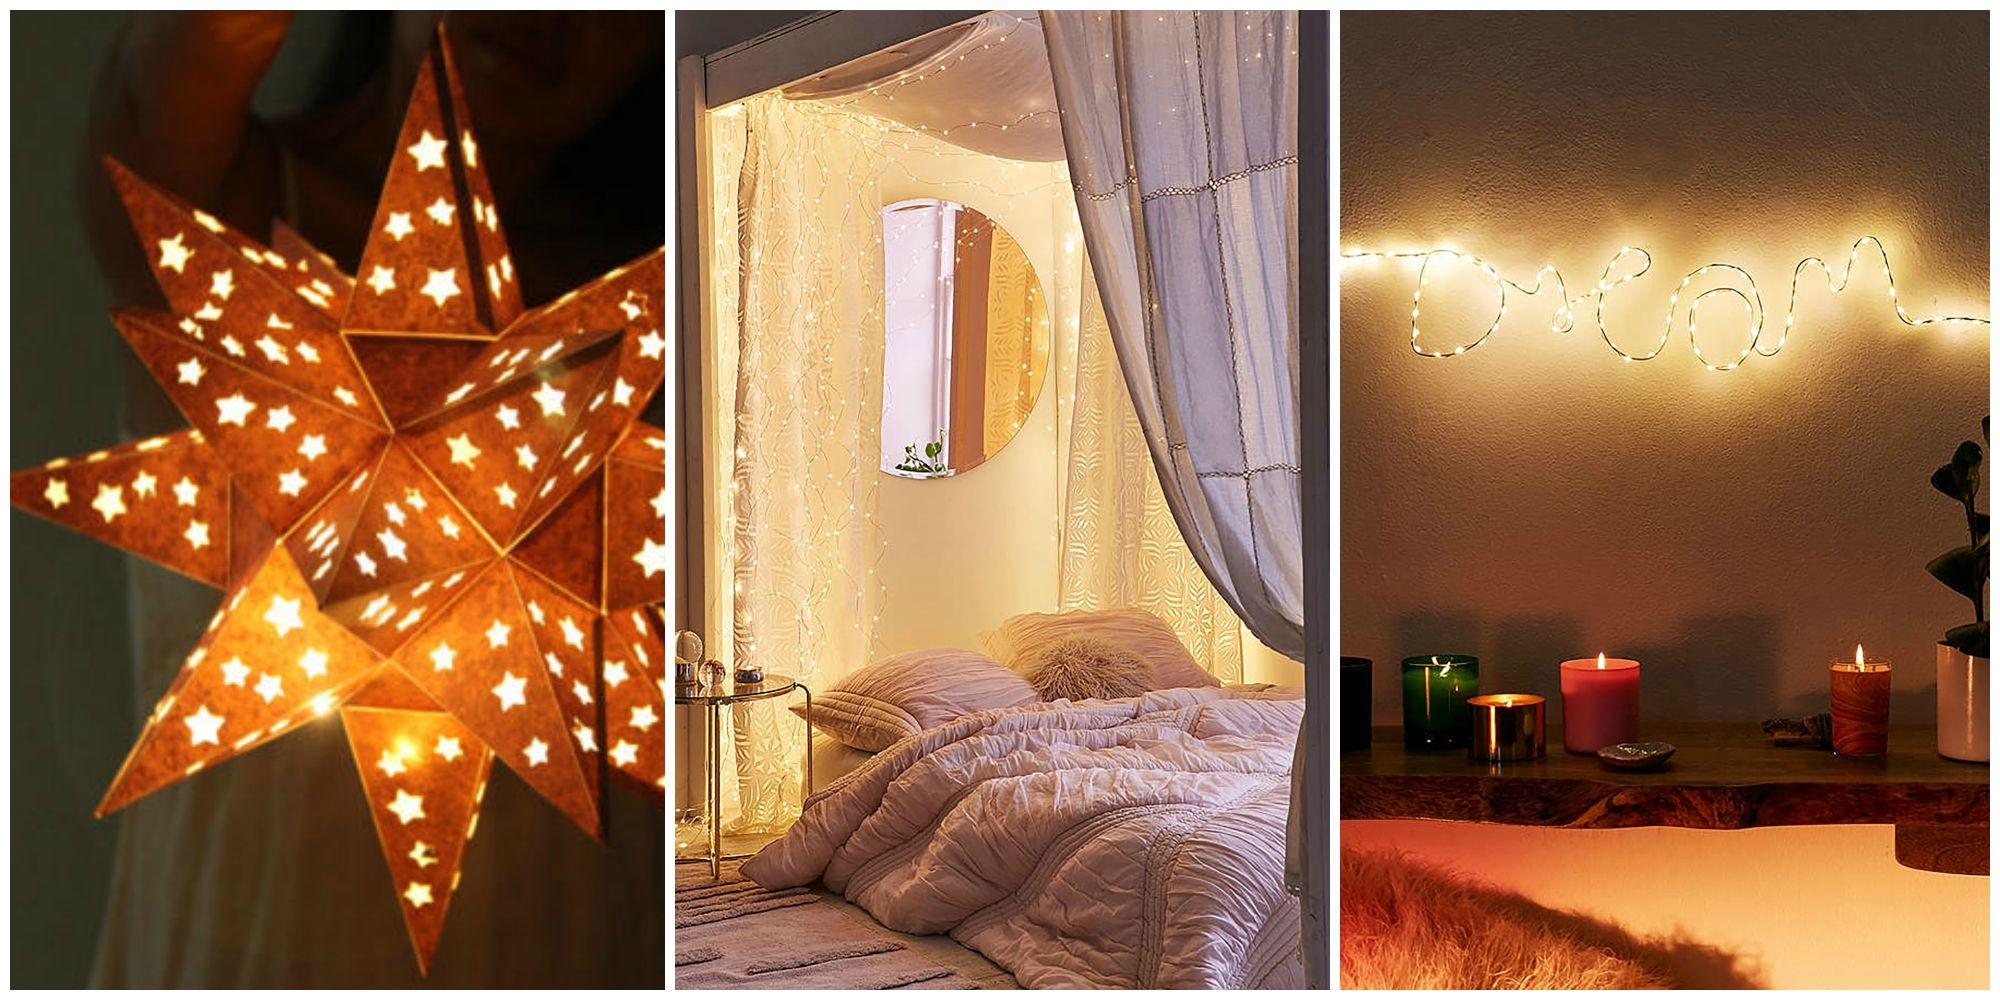 24 Ways to Decorate Your Home With Christmas Lights - Decorating ...